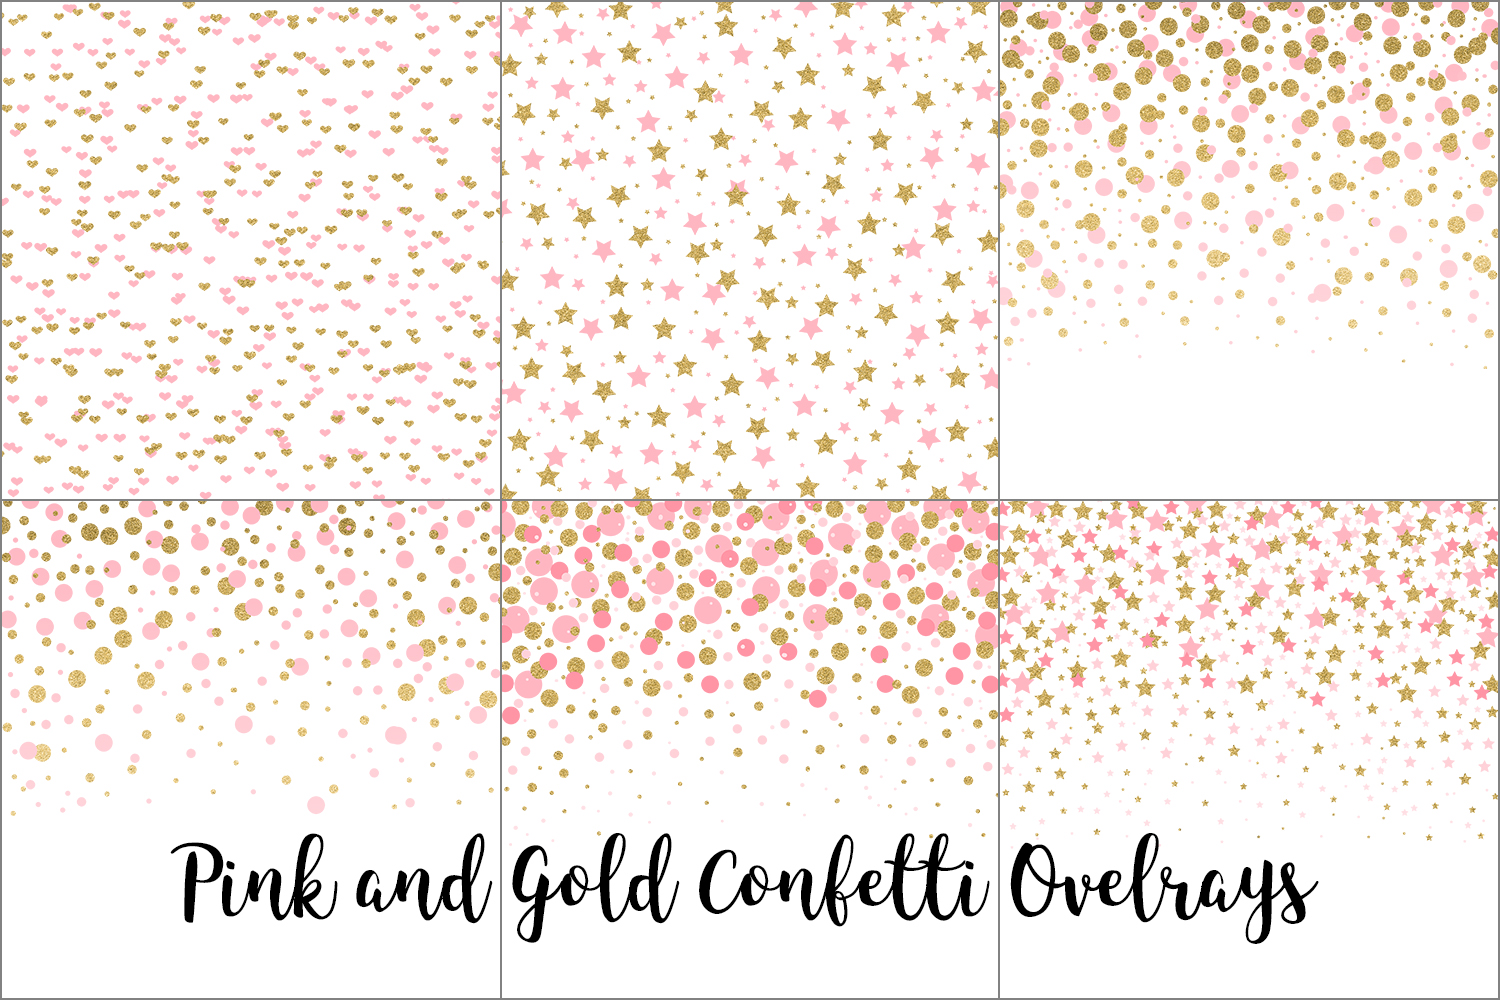 Pink and Gold Confetti Overlays, Transparent PNGs example image 5